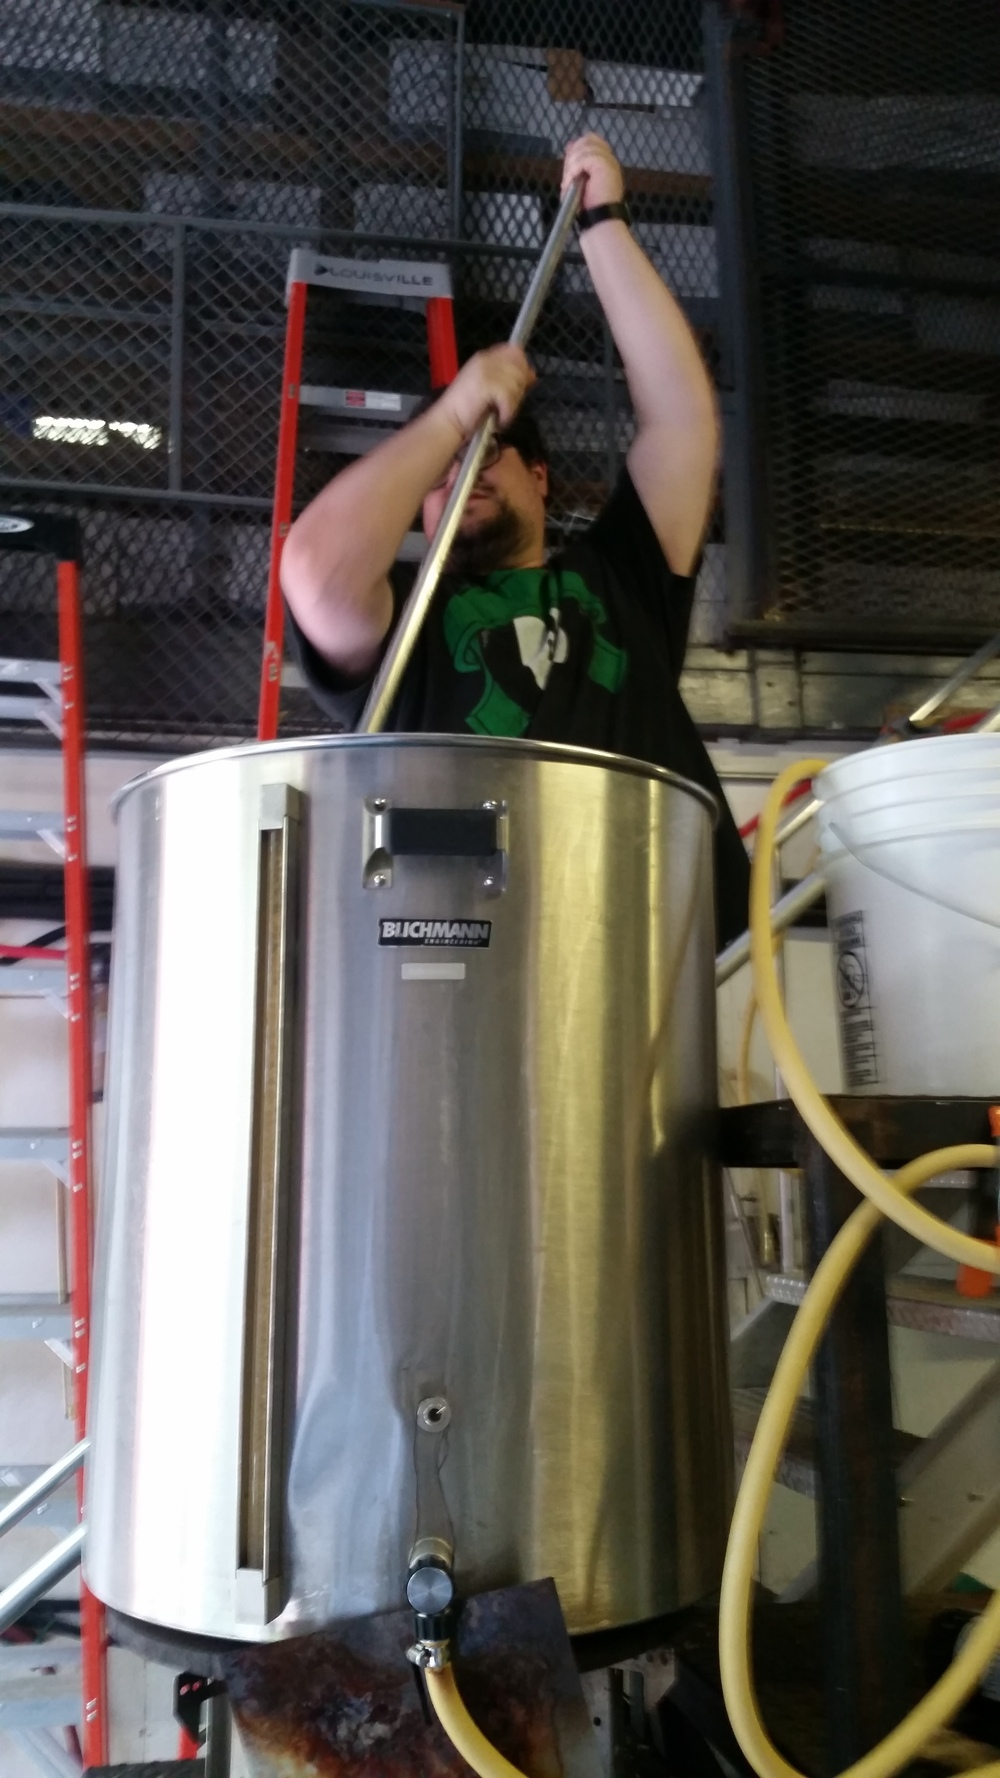 Brian Pope stirring the mash on brew day at Folksbier.